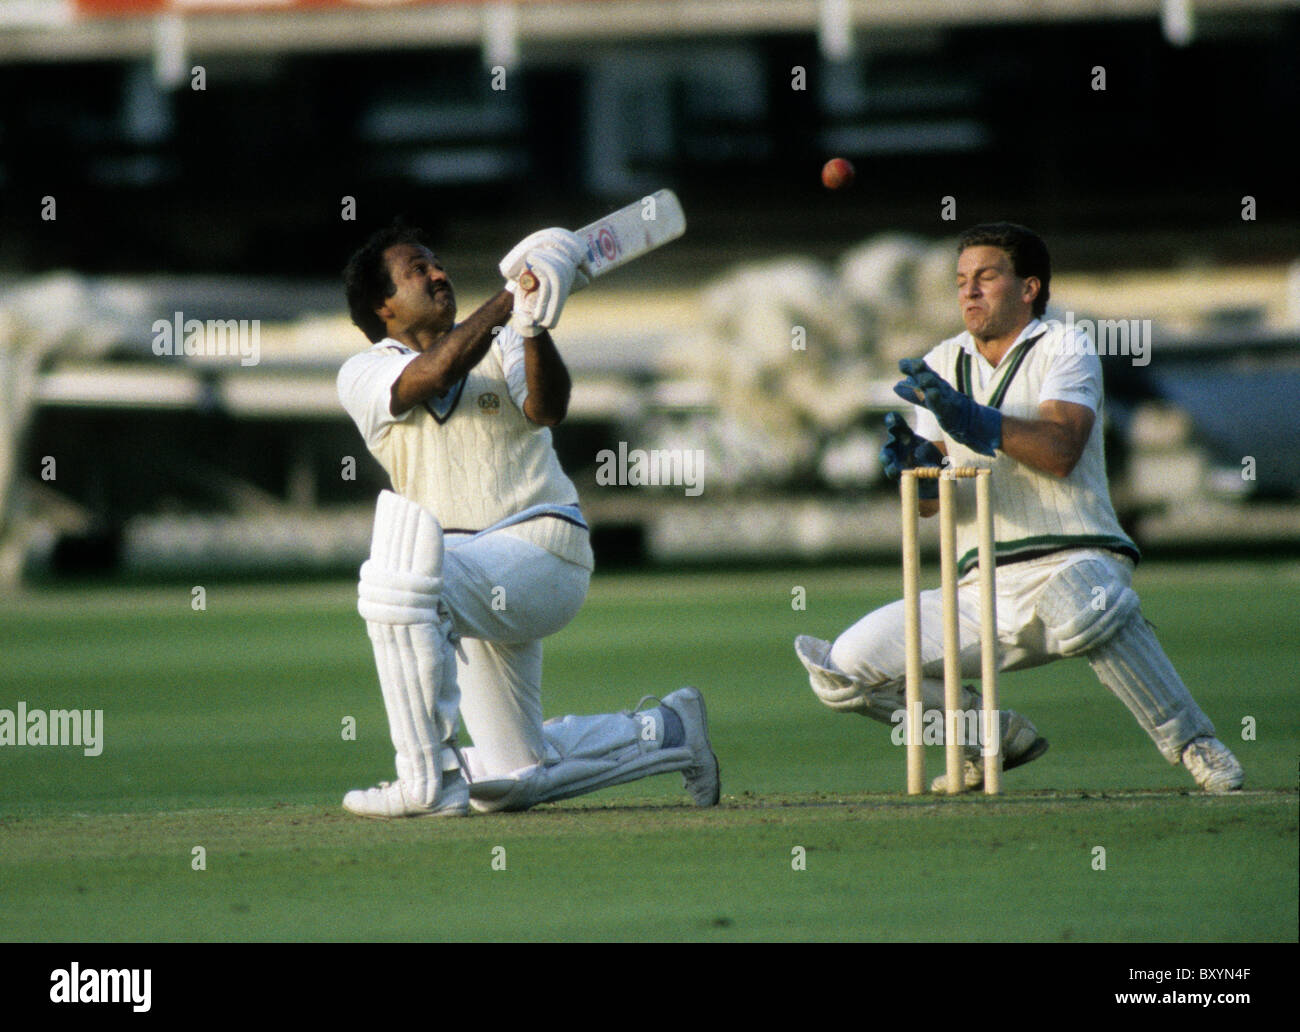 Batsman Mushtaq Mohammad Pakistani cricketer playing for Old Hill at Lords 28/8/87 - Stock Image